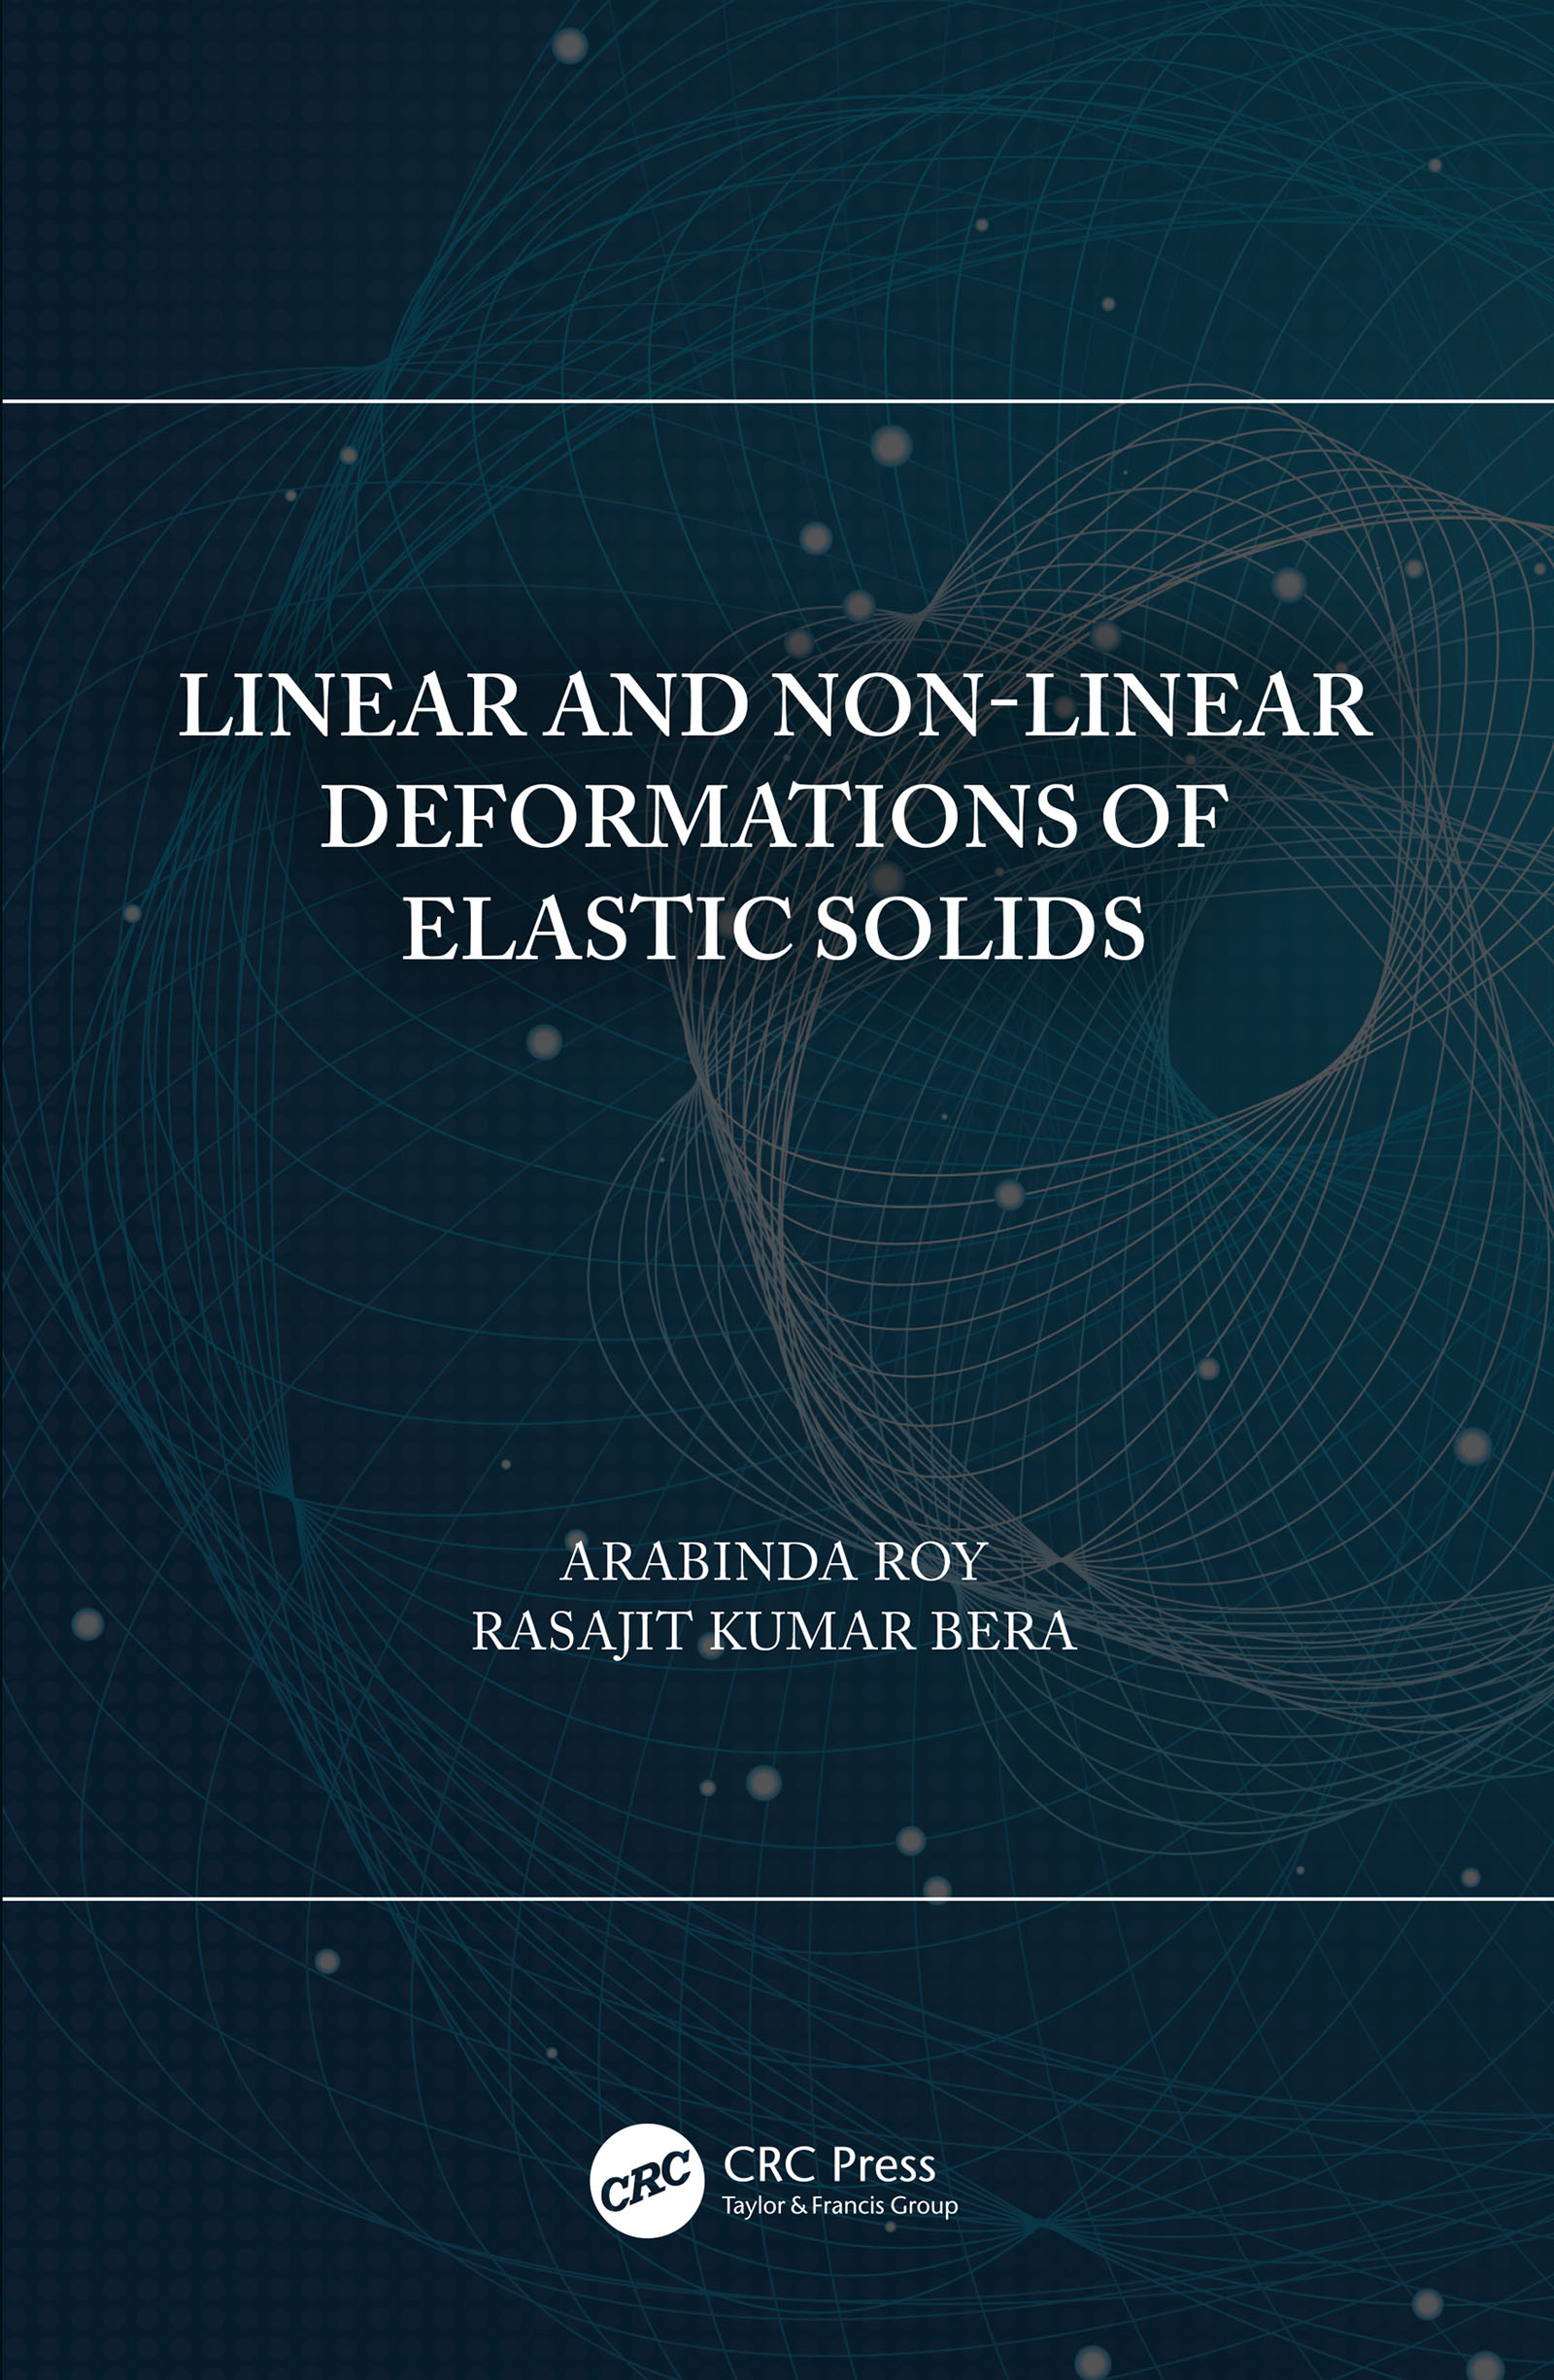 Linear and Non-Linear Deformations of Elastic Solids